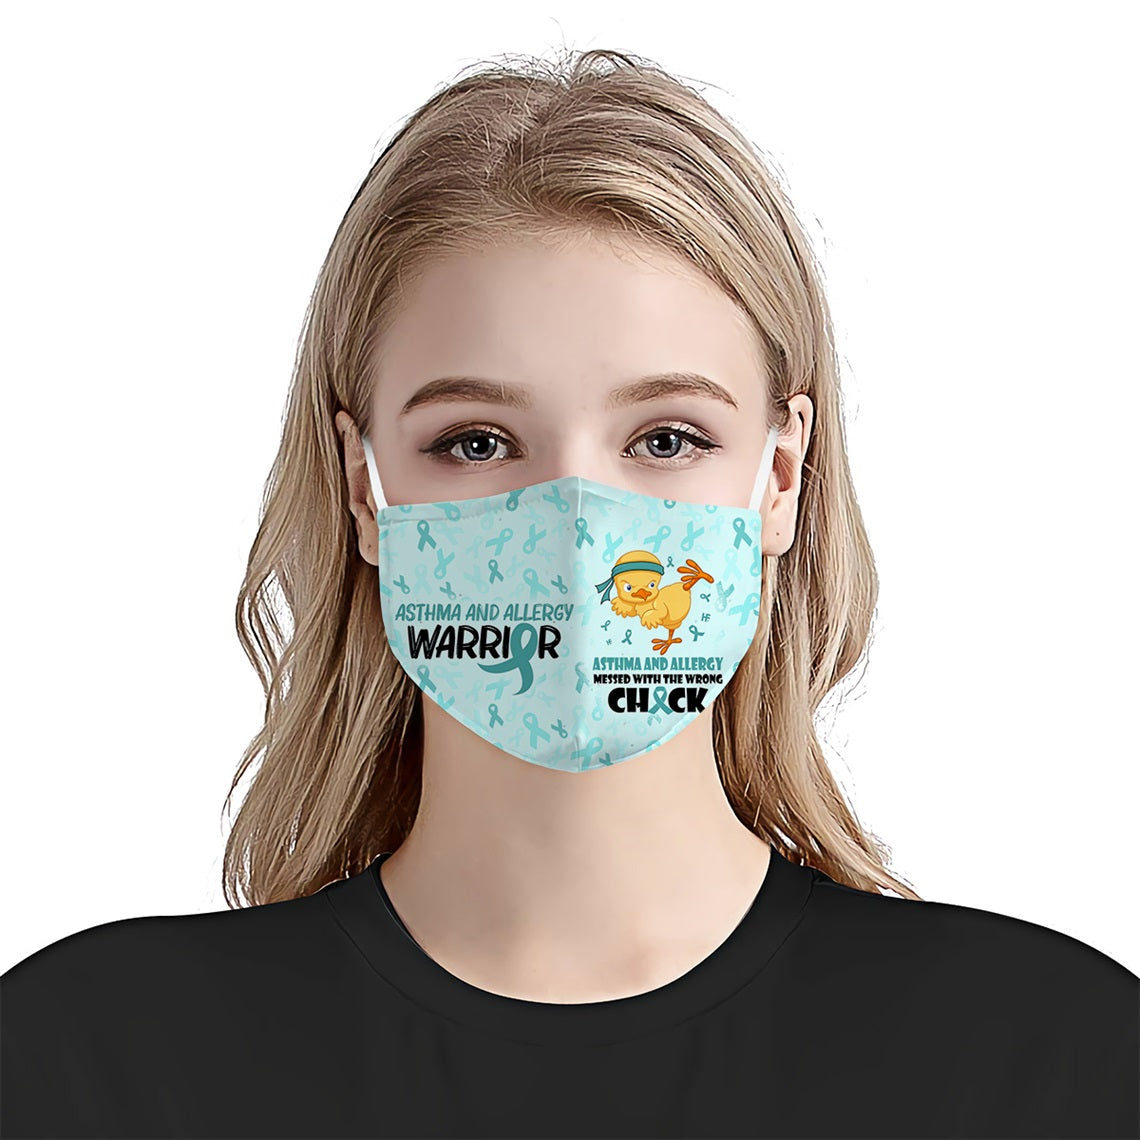 Asthma And Allergy Awareness Chick EZ01 0405 Face Mask - Hyperfavor